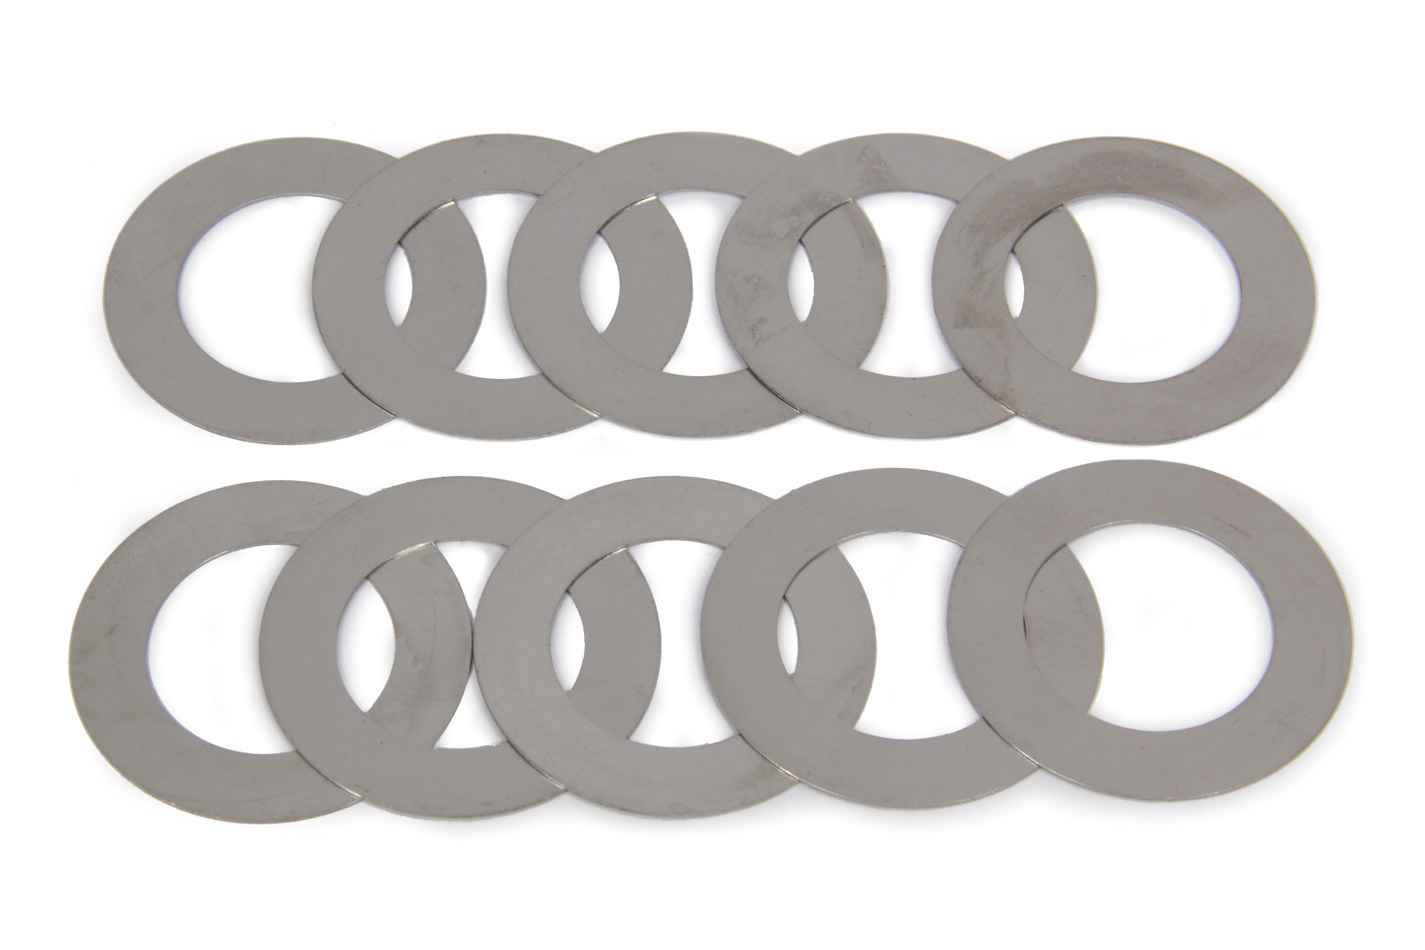 MPD Racing 14207 Spindle Shim, 0.015 in Thick, Steel, Natural, MPD Sprint Car Spindle, Each